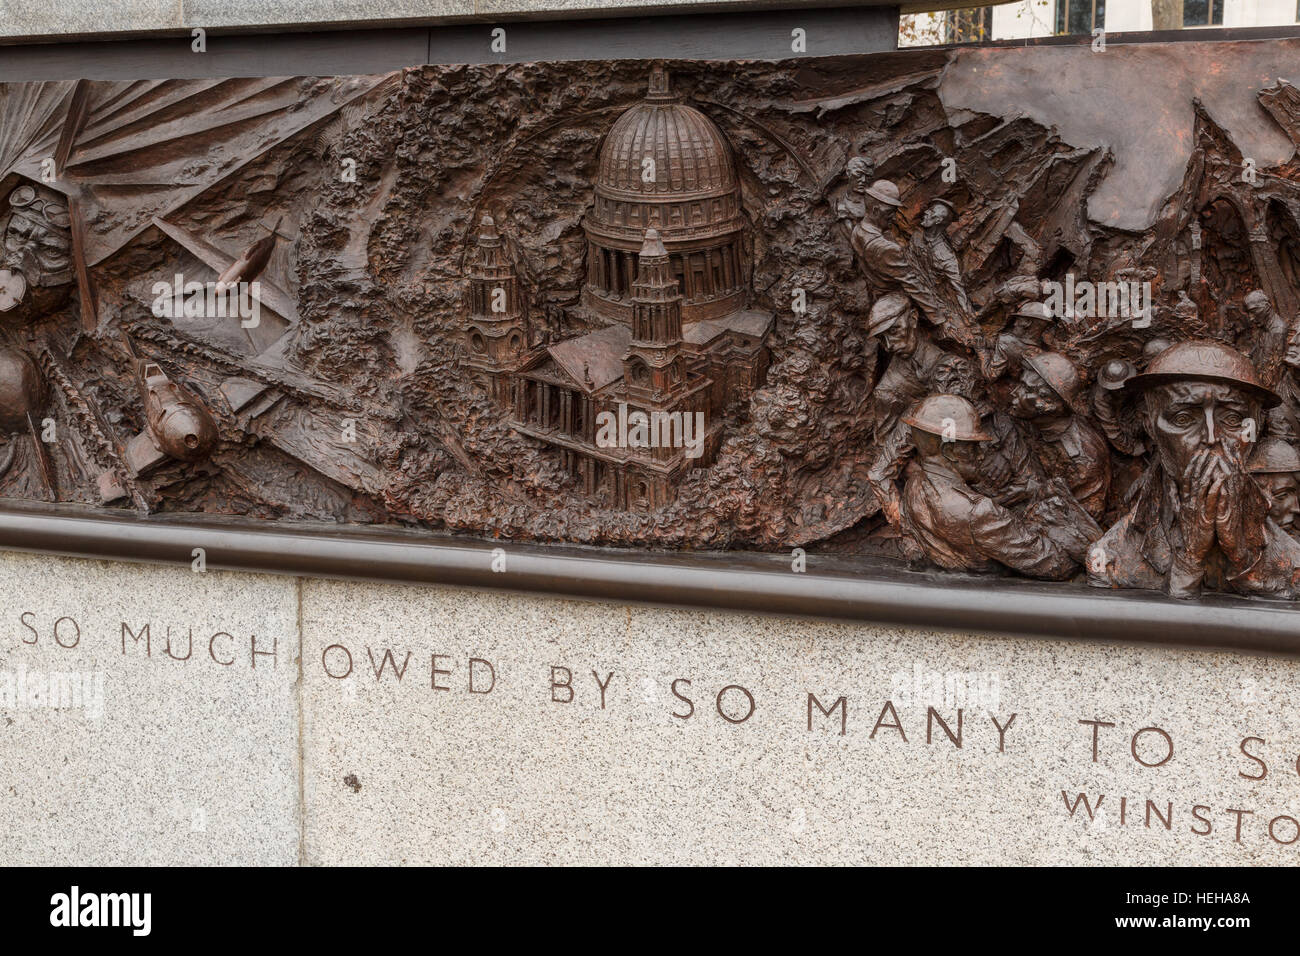 Detail of the British Royal Air Force memorial, Victoria Embankment, London. In London, England. - Stock Image